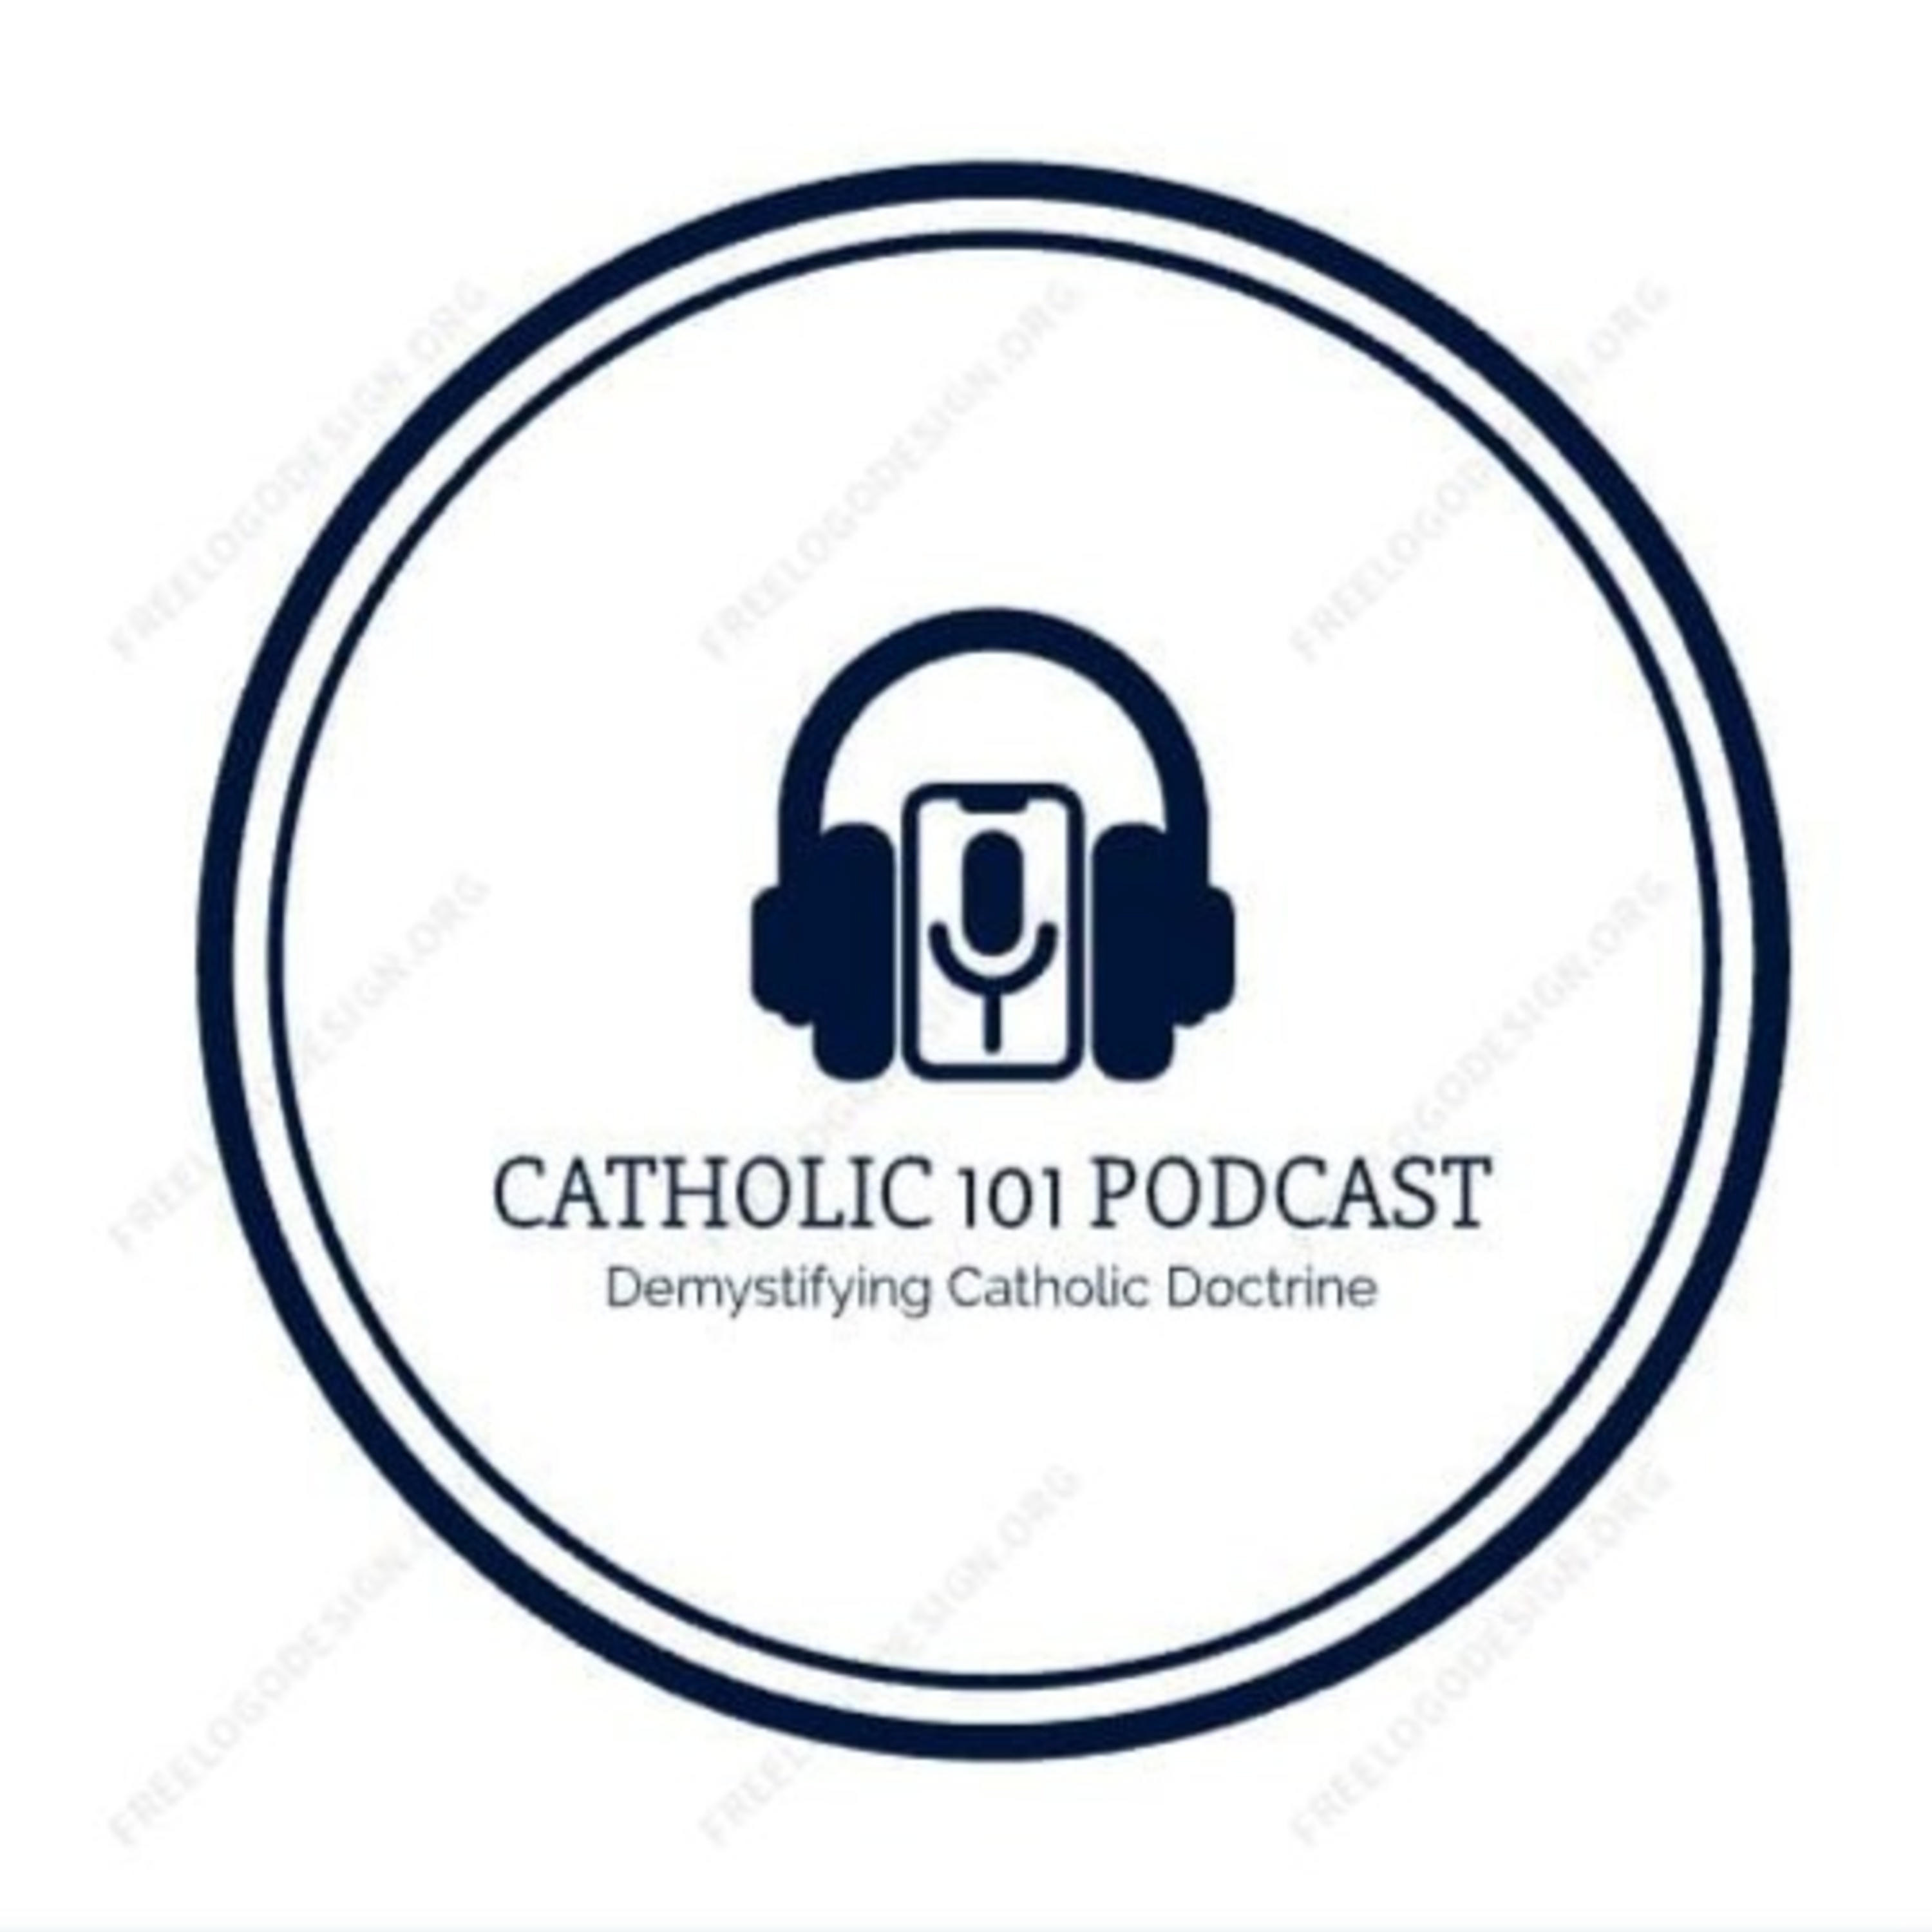 CATHOLIC 101 PODCAST